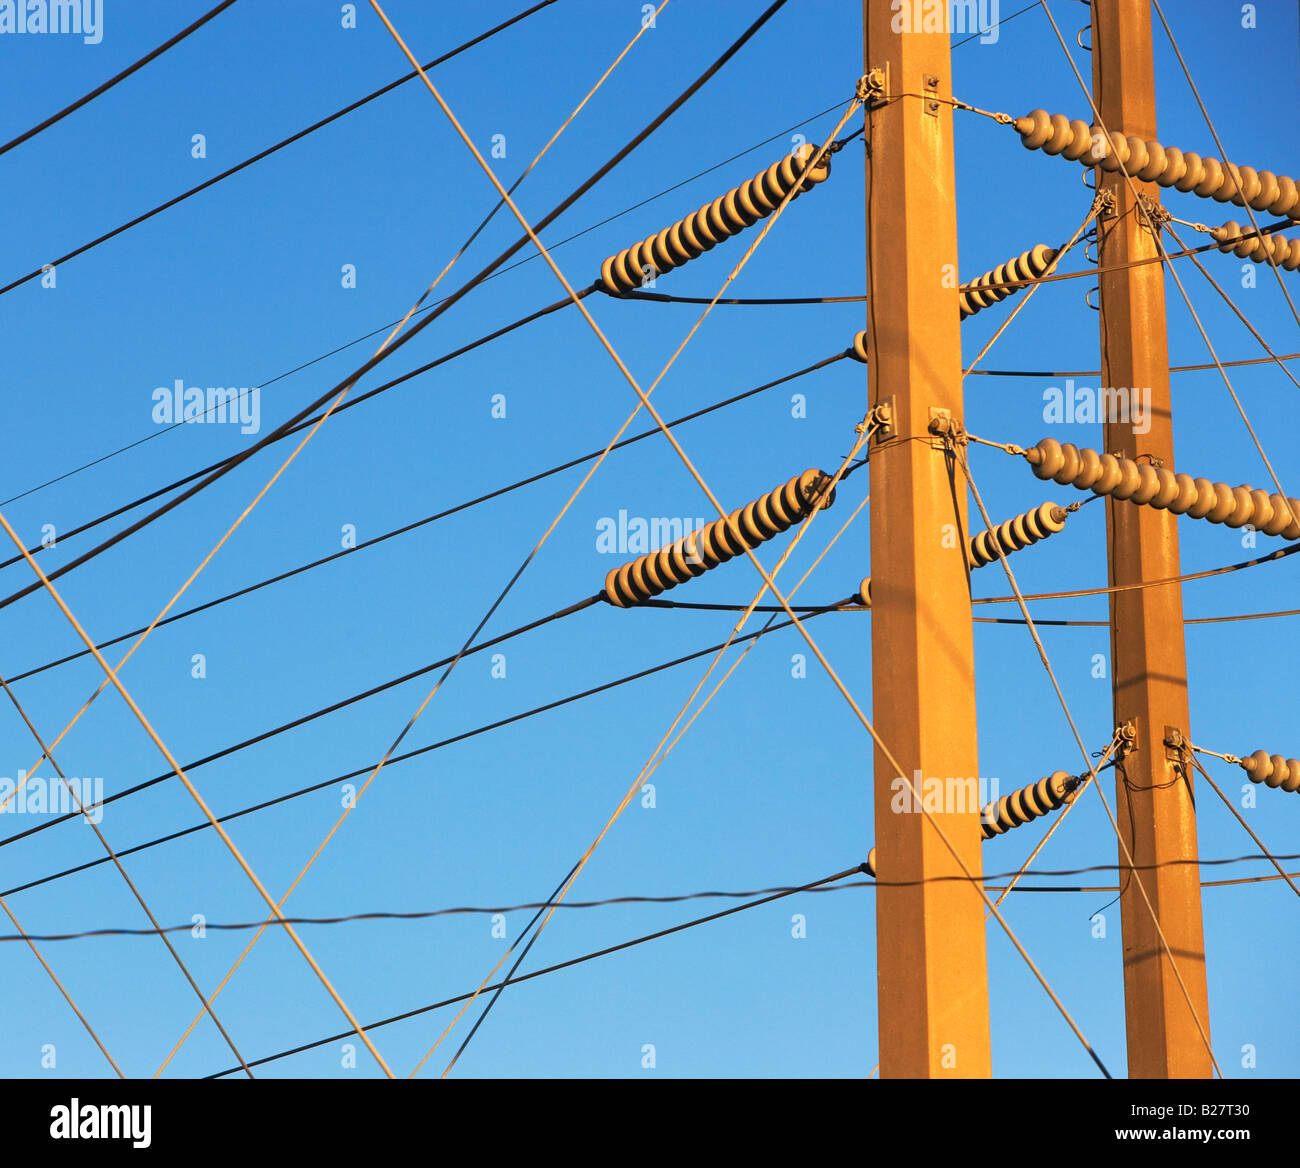 Low angle view of power lines on poles - Stock Image